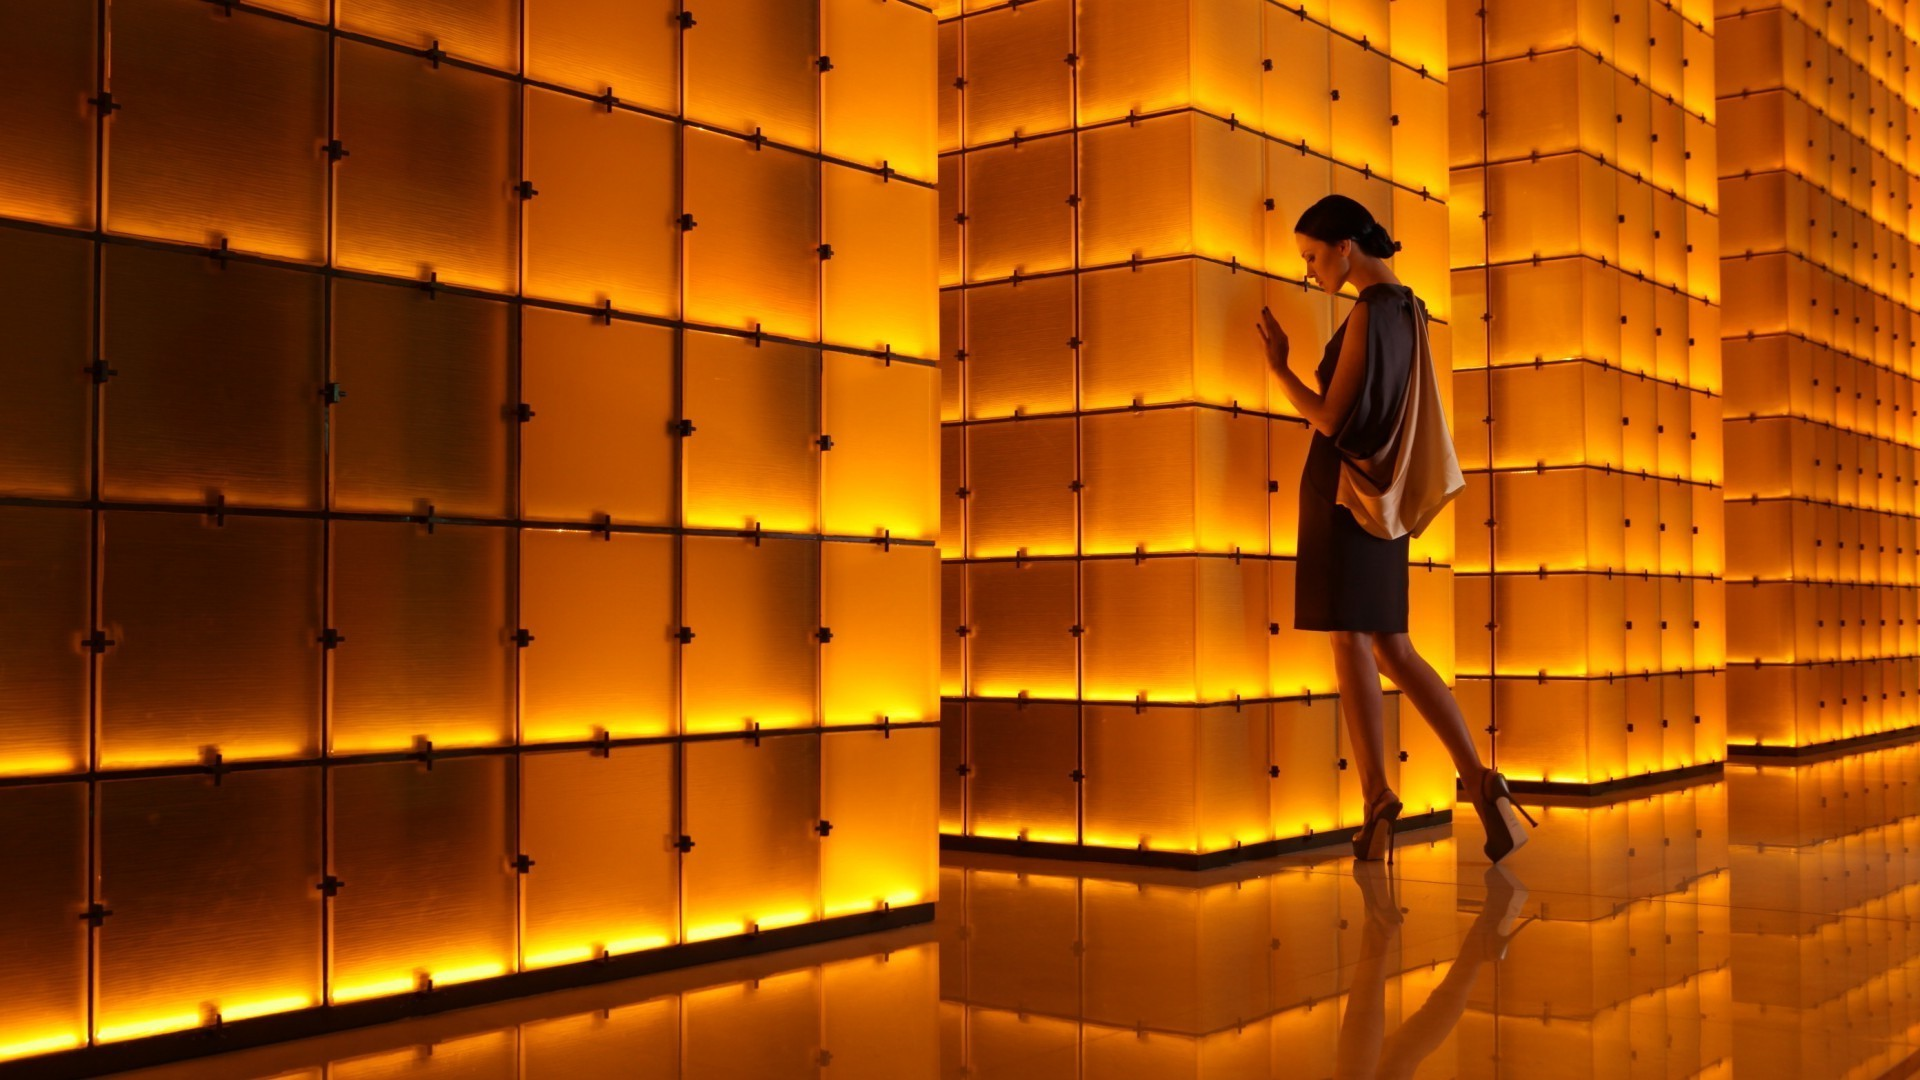 Model from a luminous wall